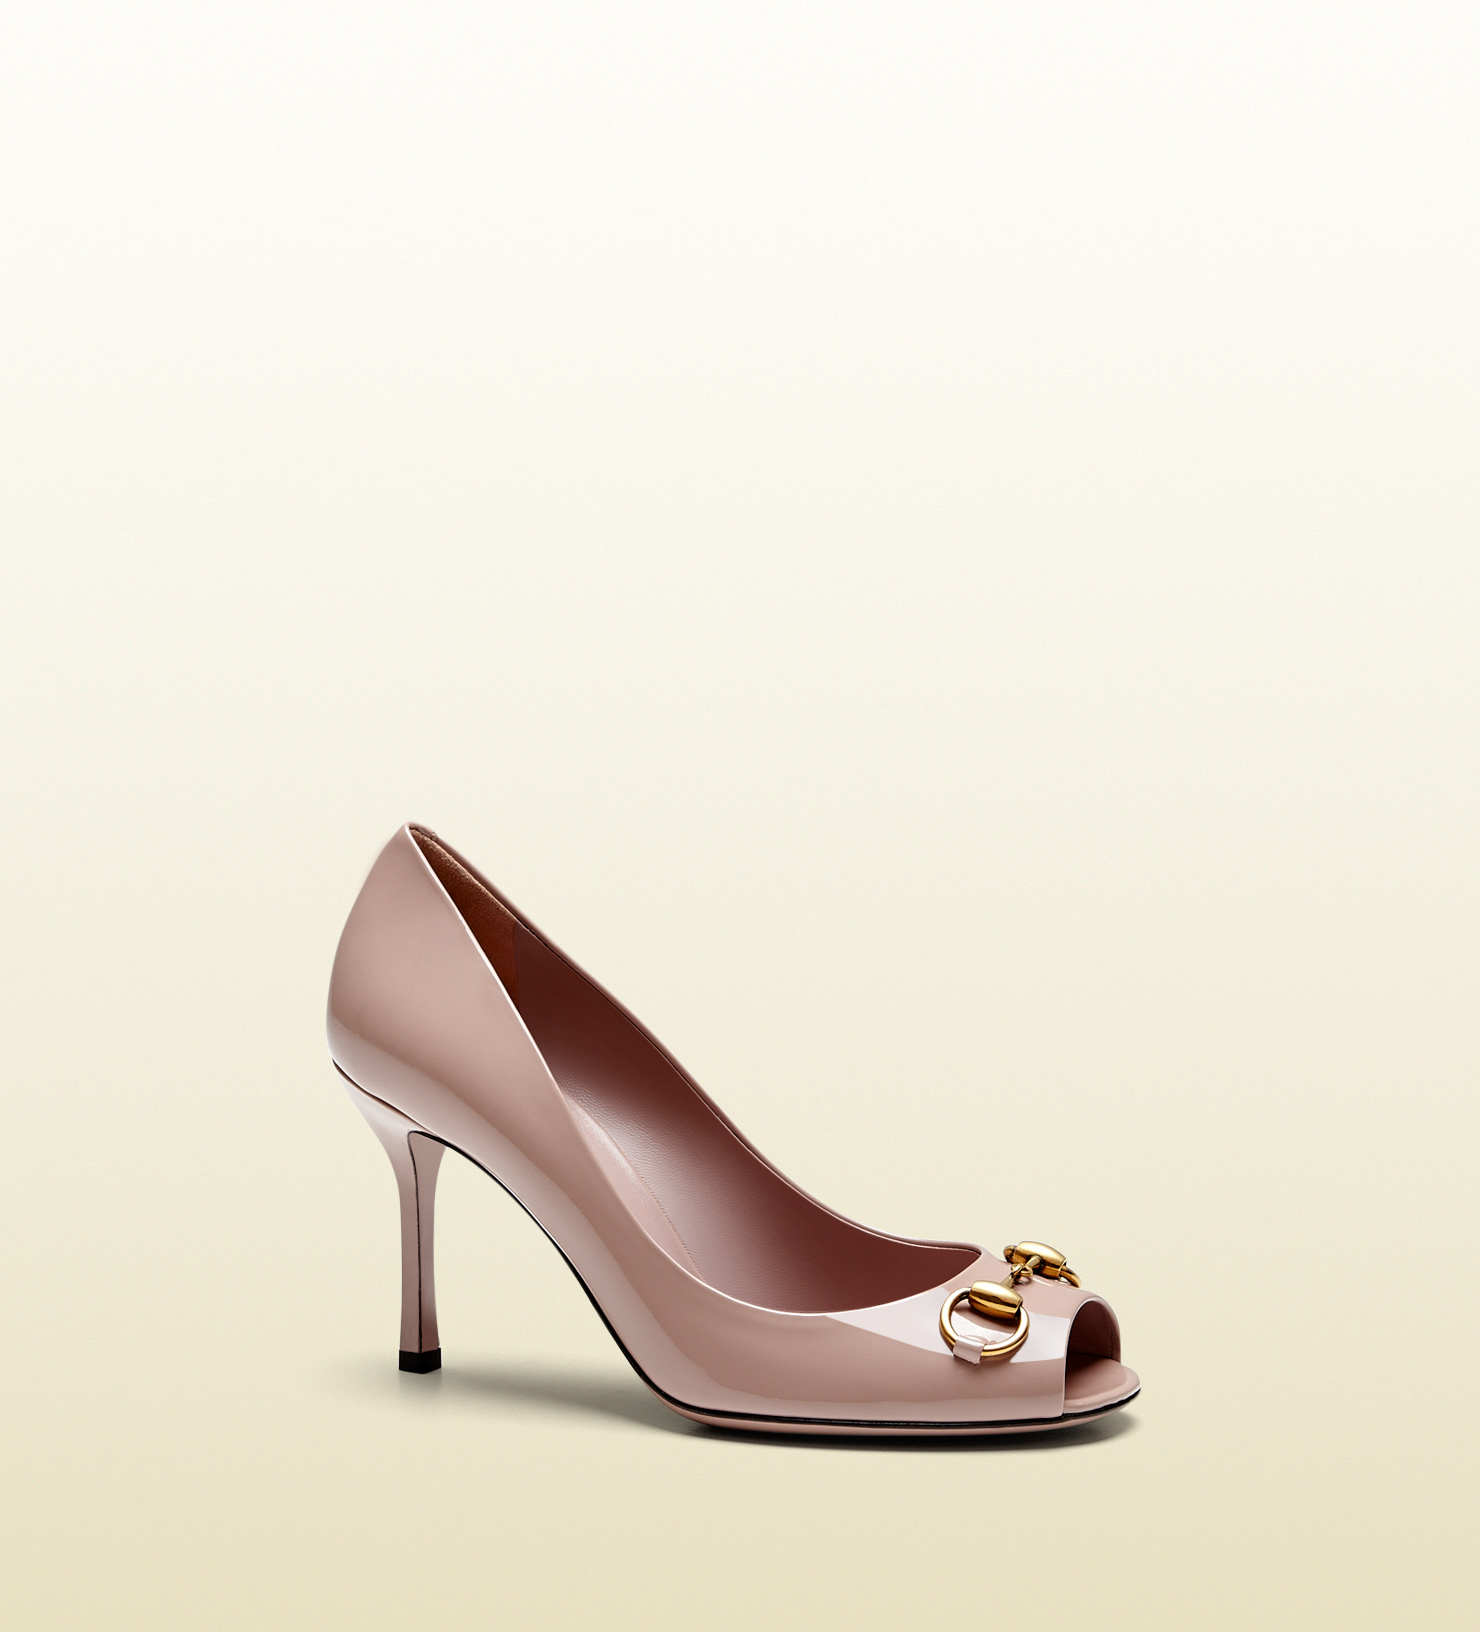 440a98cfbeb Lyst - Gucci Jolene Patent Leather Mid-heel Pump in Pink